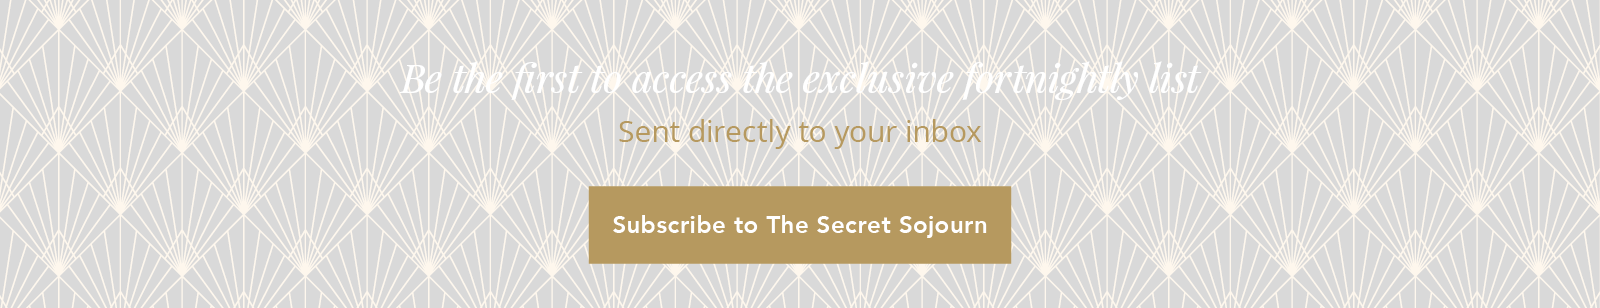 Subscribe to The Secret Sojourn